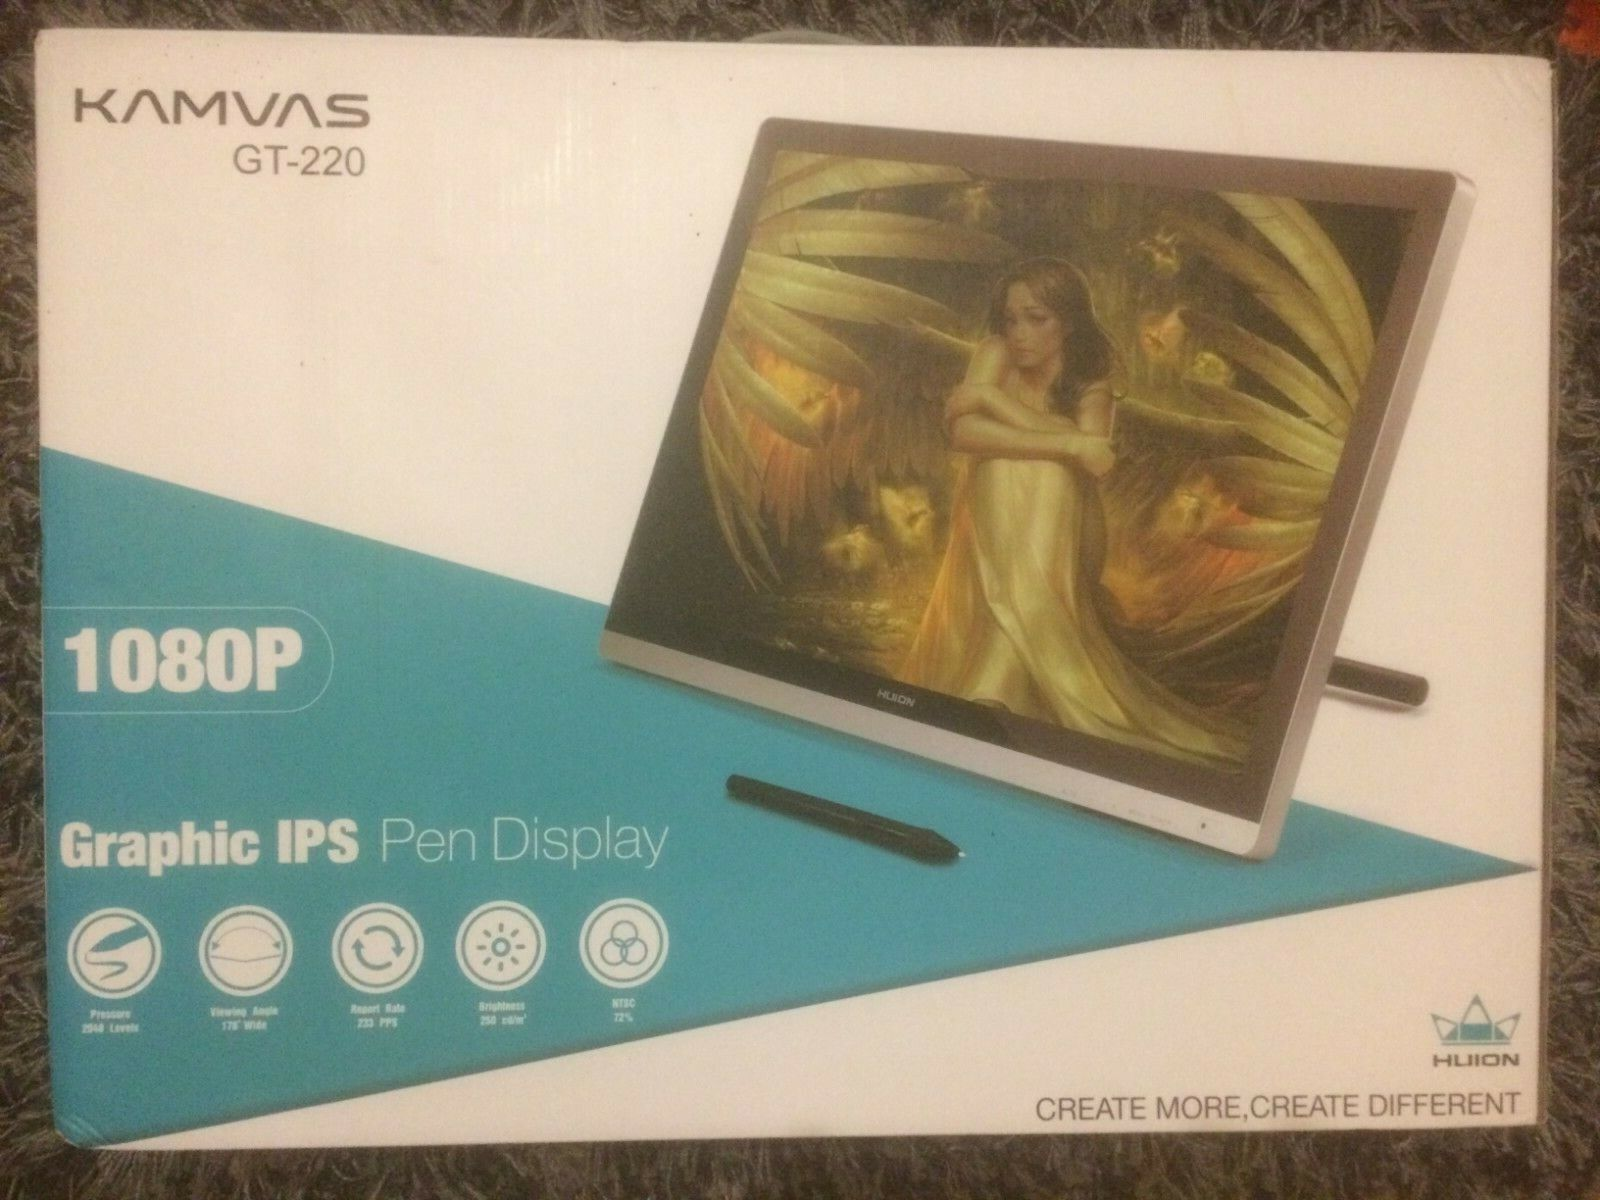 Tablette graphique à écran huion gt 220 v2 kamvas 1080p